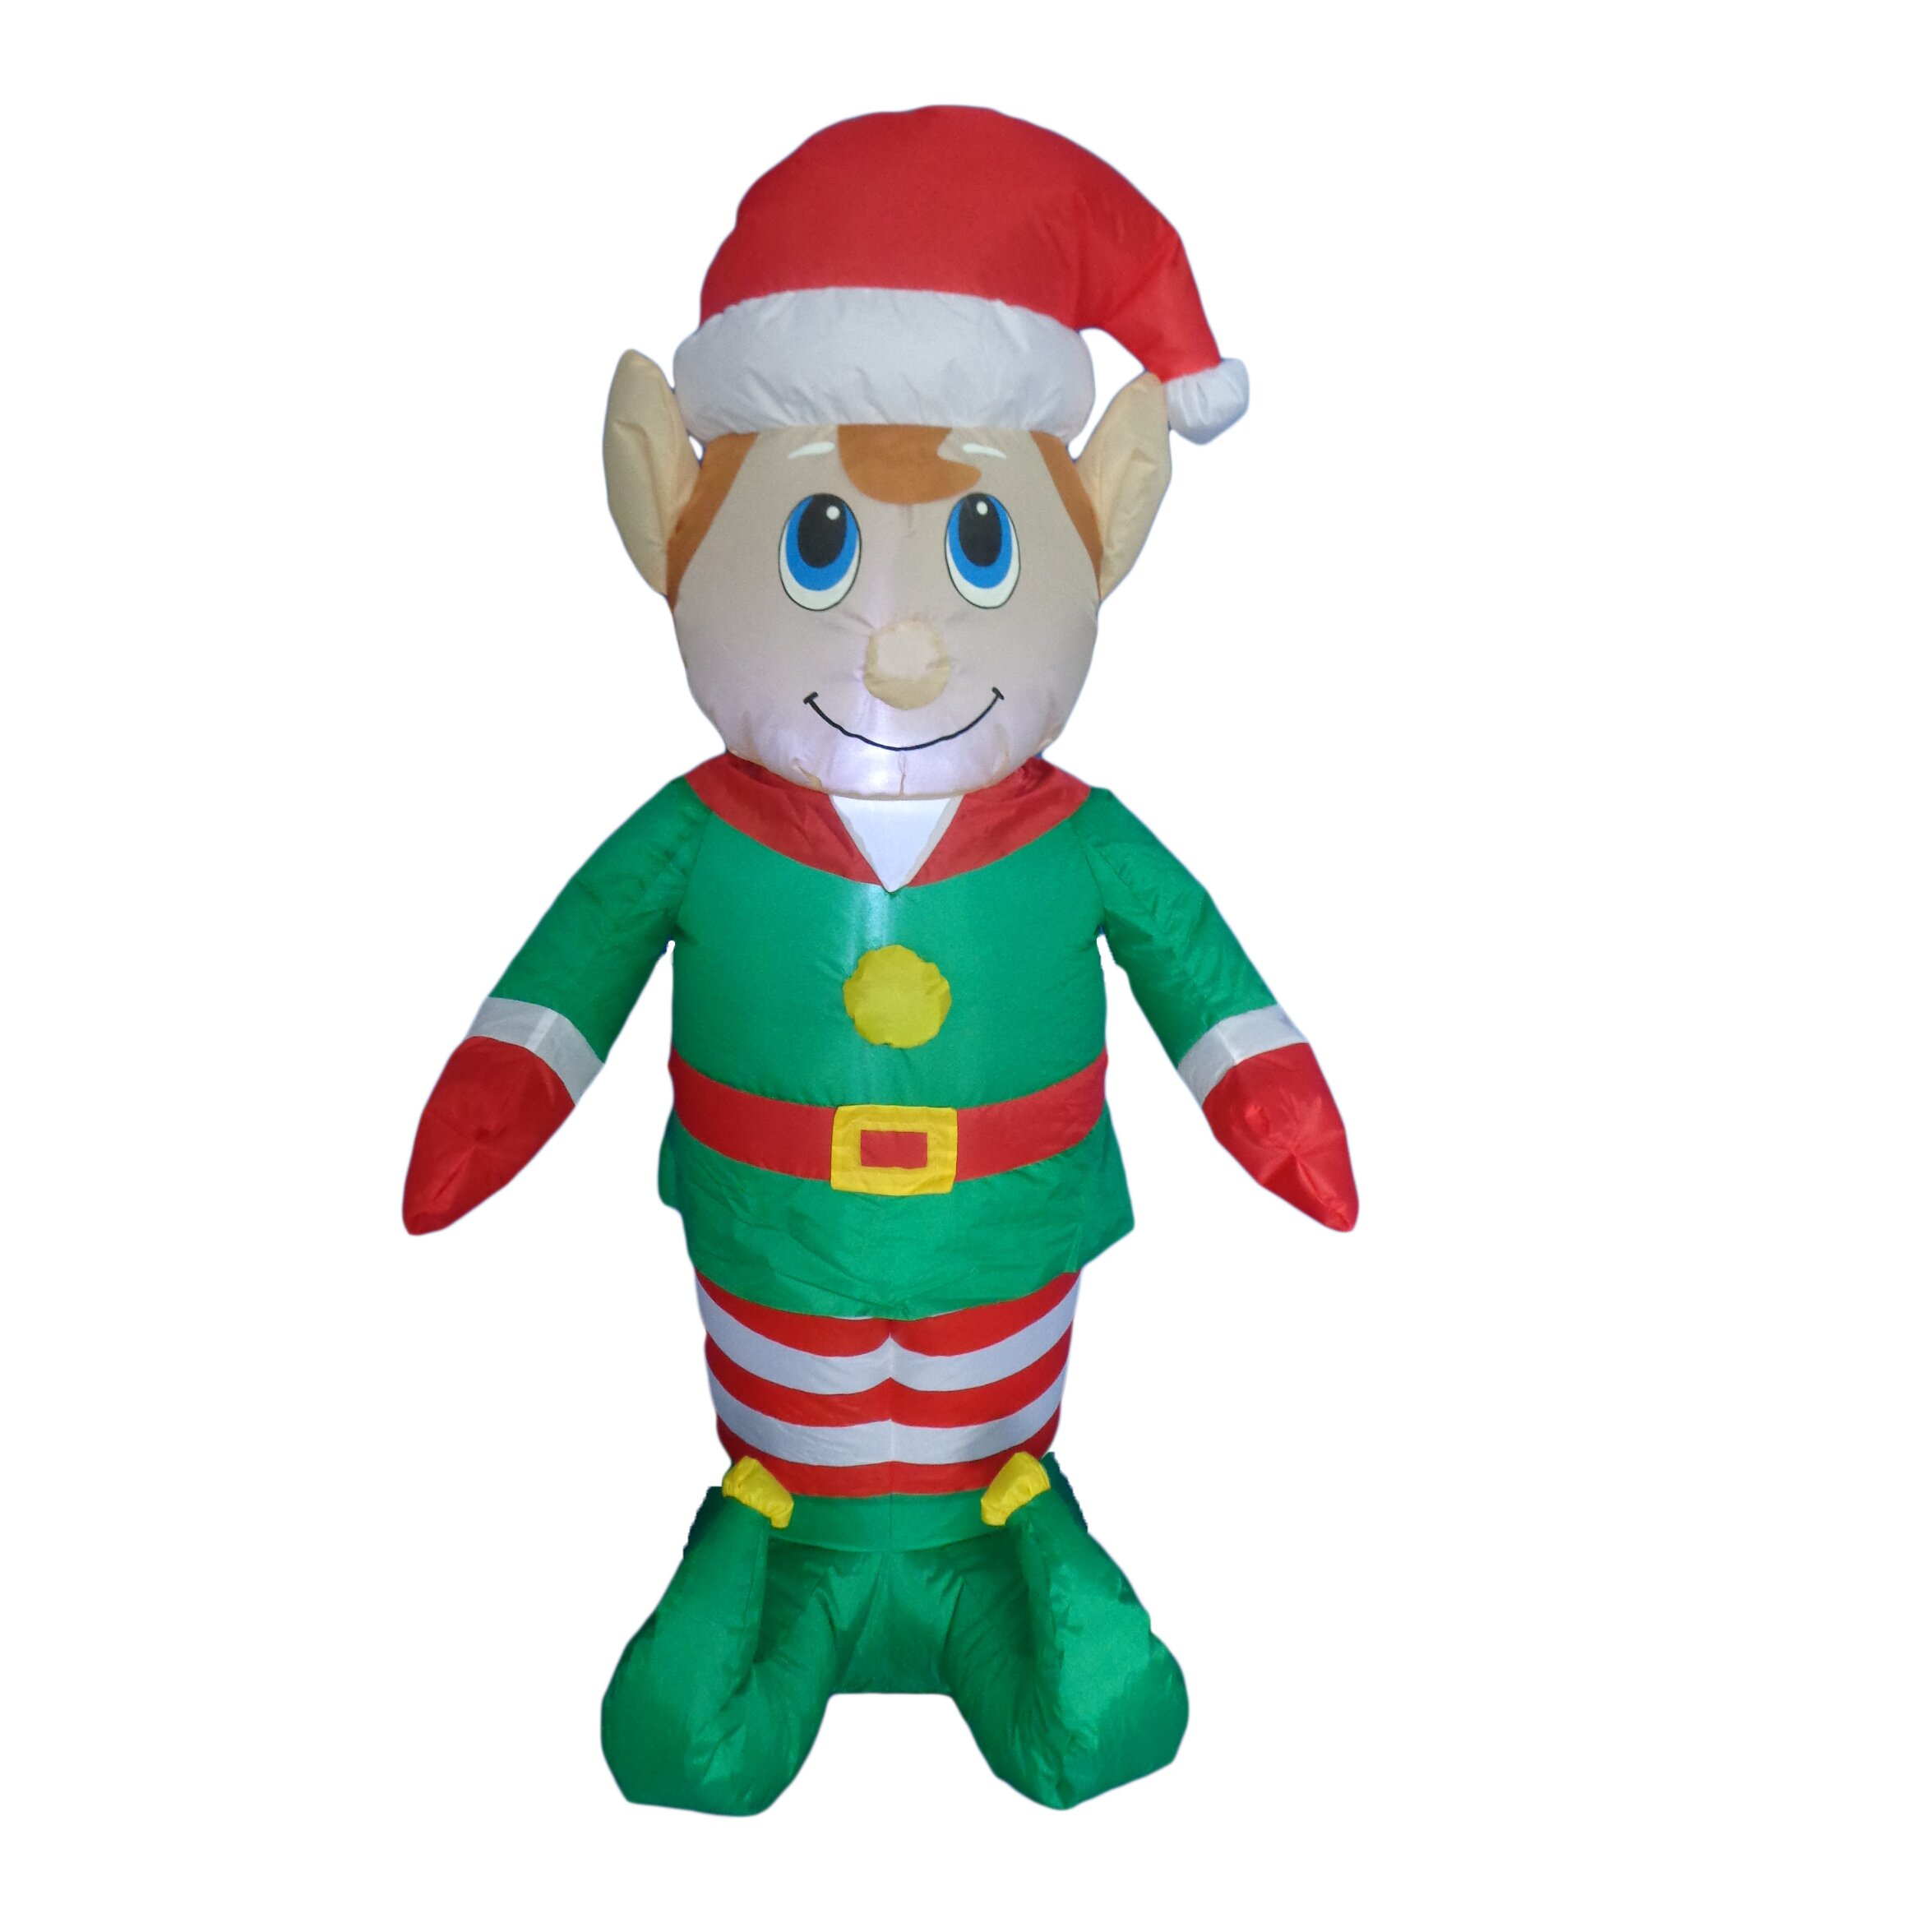 Bzb Goods Christmas Inflatable Elf Amp Reviews Wayfair